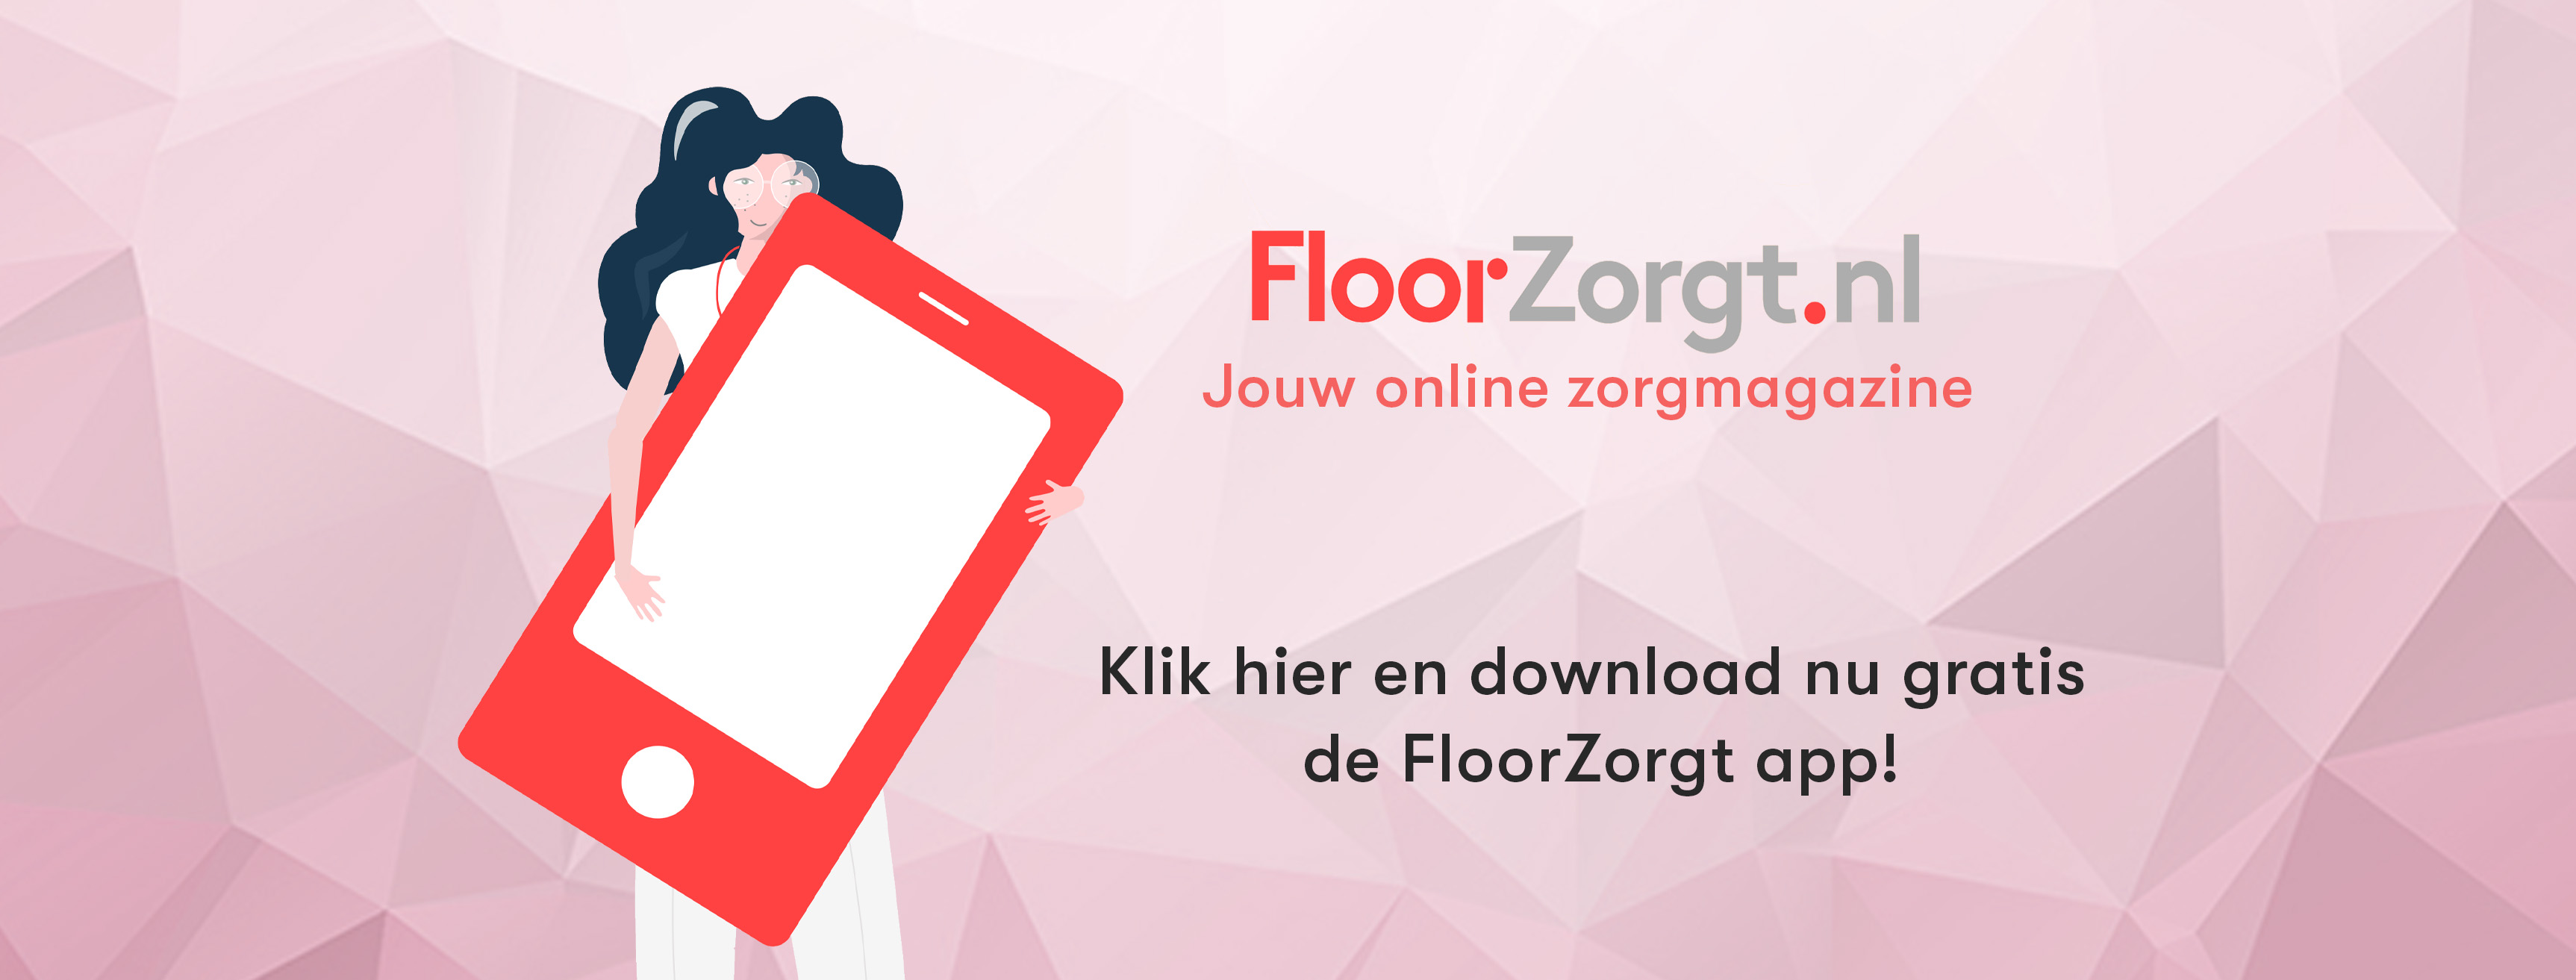 app floorzorgt downloaden